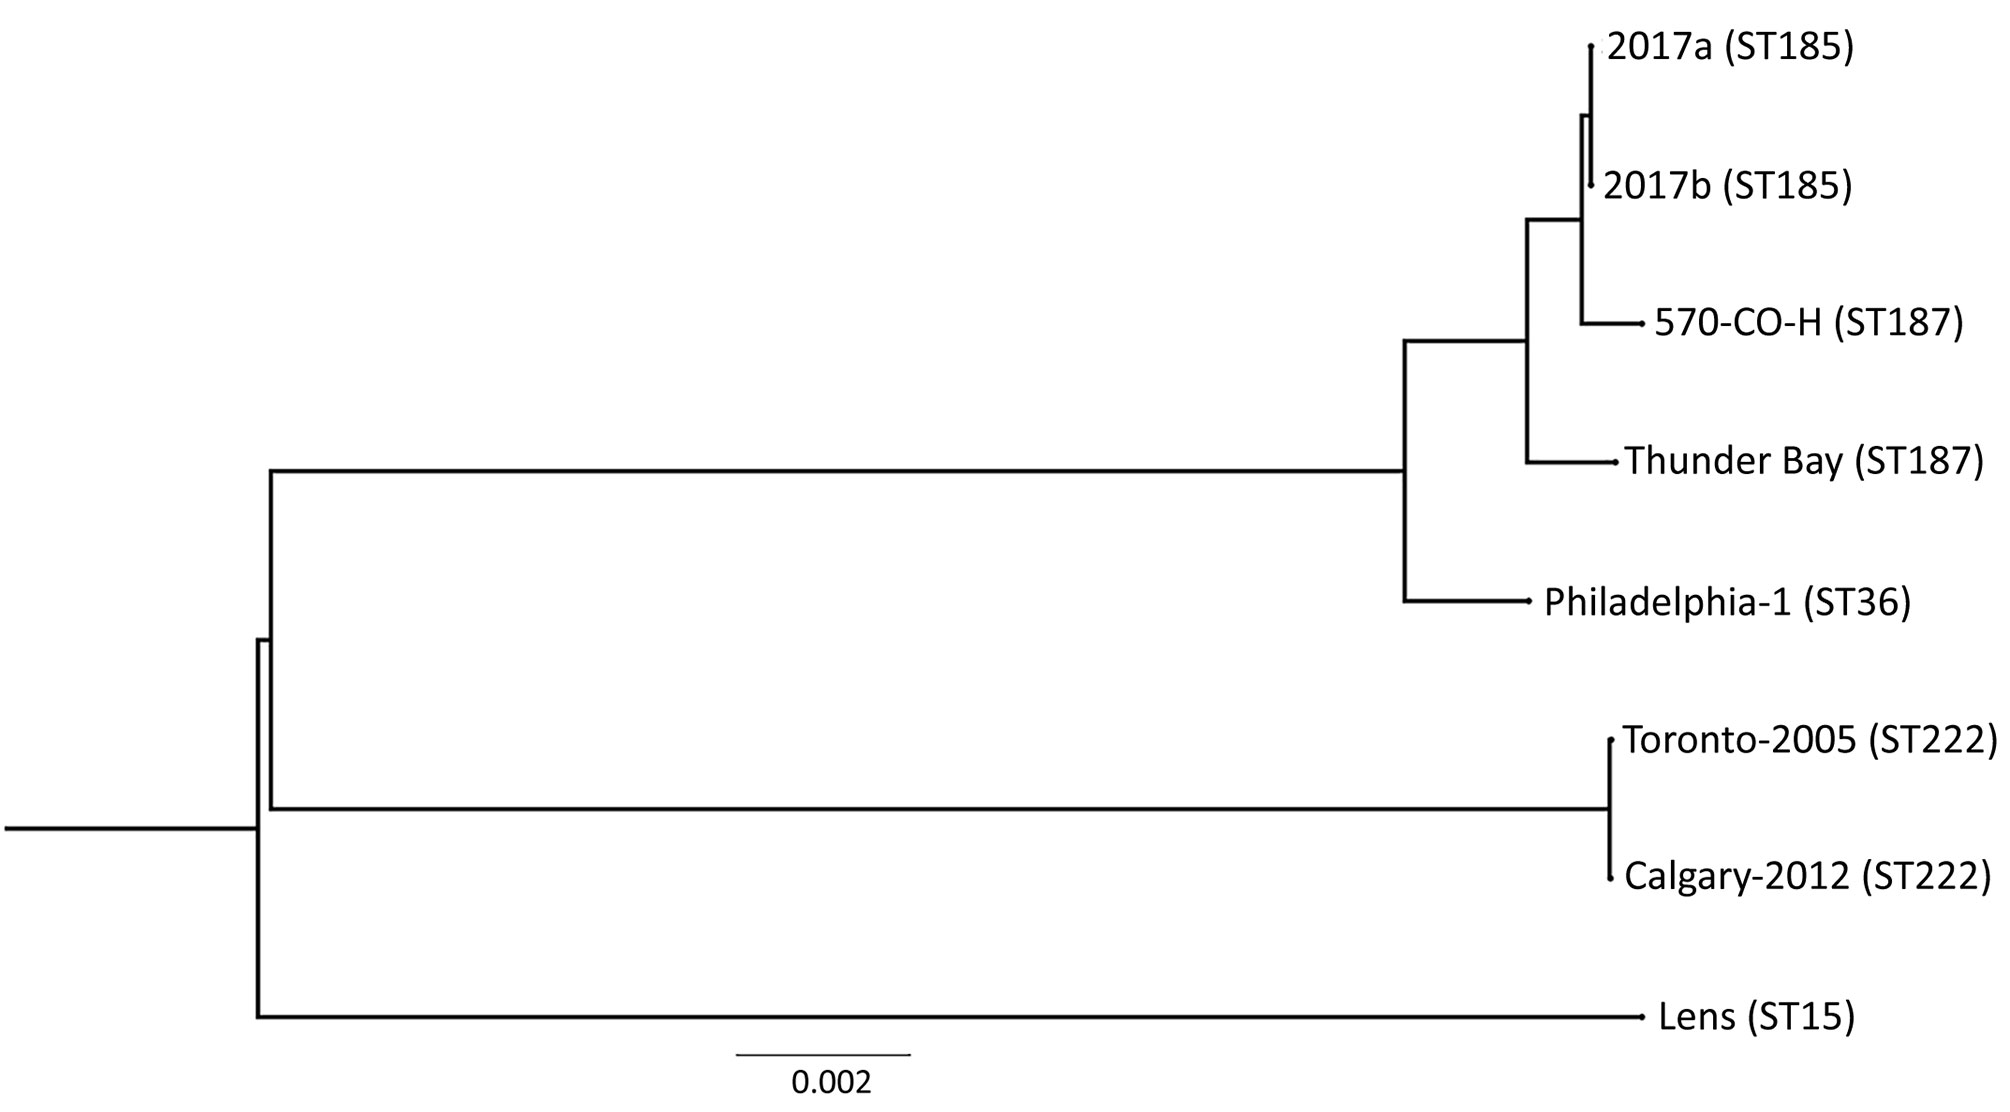 Phylogenetic tree depicting the relationship between Legionella pneumophila isolates identified during investigation of legionellosis in an immunocompromised 3-year-old girl, Calgary, Alberta, Canada, and reference sequences. L. pneumophila core ortholog-based maximum-likelihood phylogenetic tree shows 8 previously published genomes and sequences of the 2 isolates from this study (2017a, clinical isolate from patient; 2017b, environmental isolate from hot tub in patient's home). Tree constructio